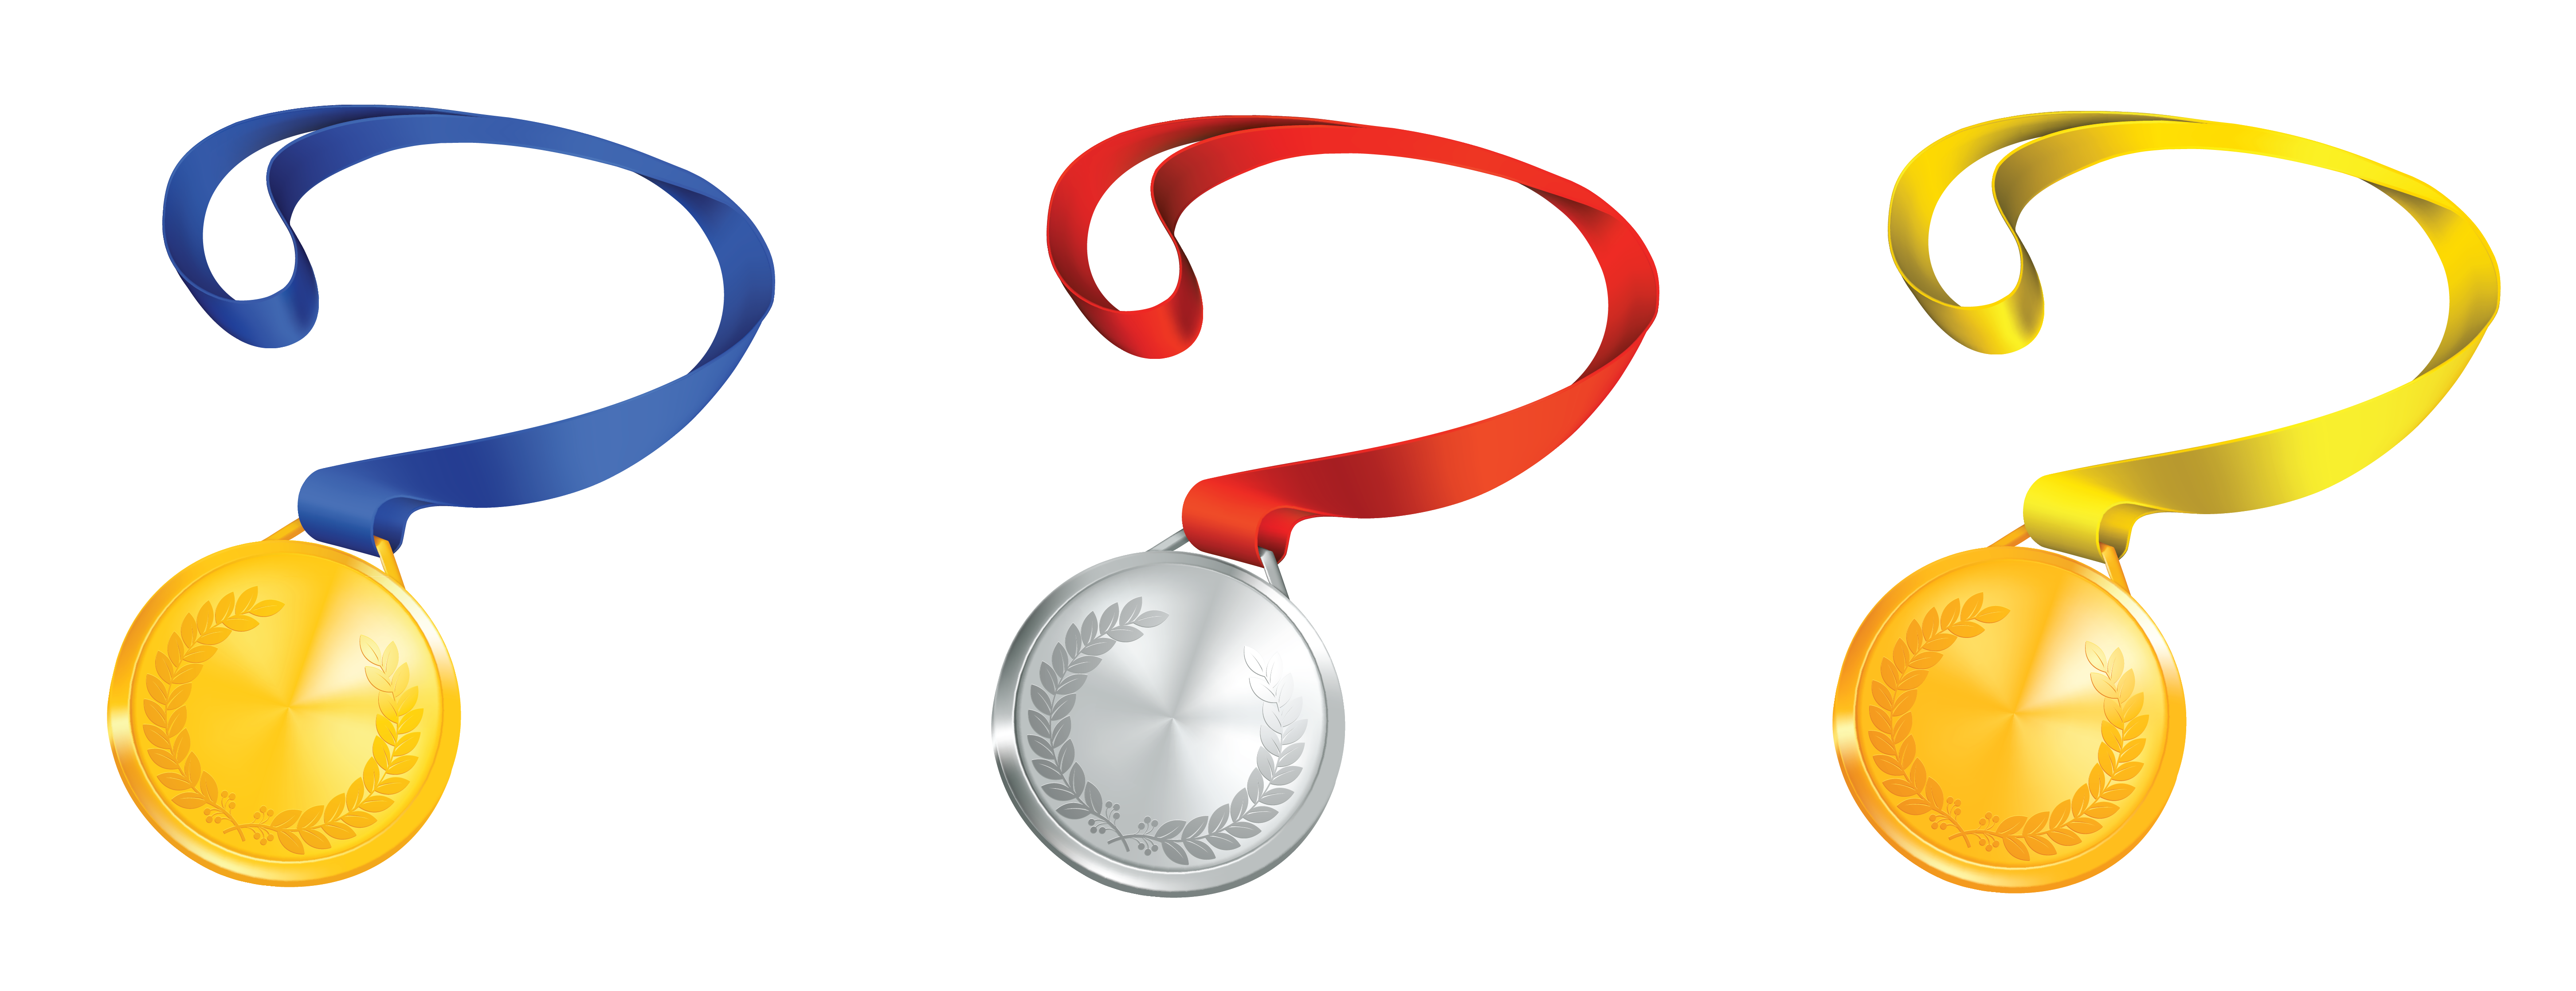 Medal clipart academic medal. Medals set png gallery